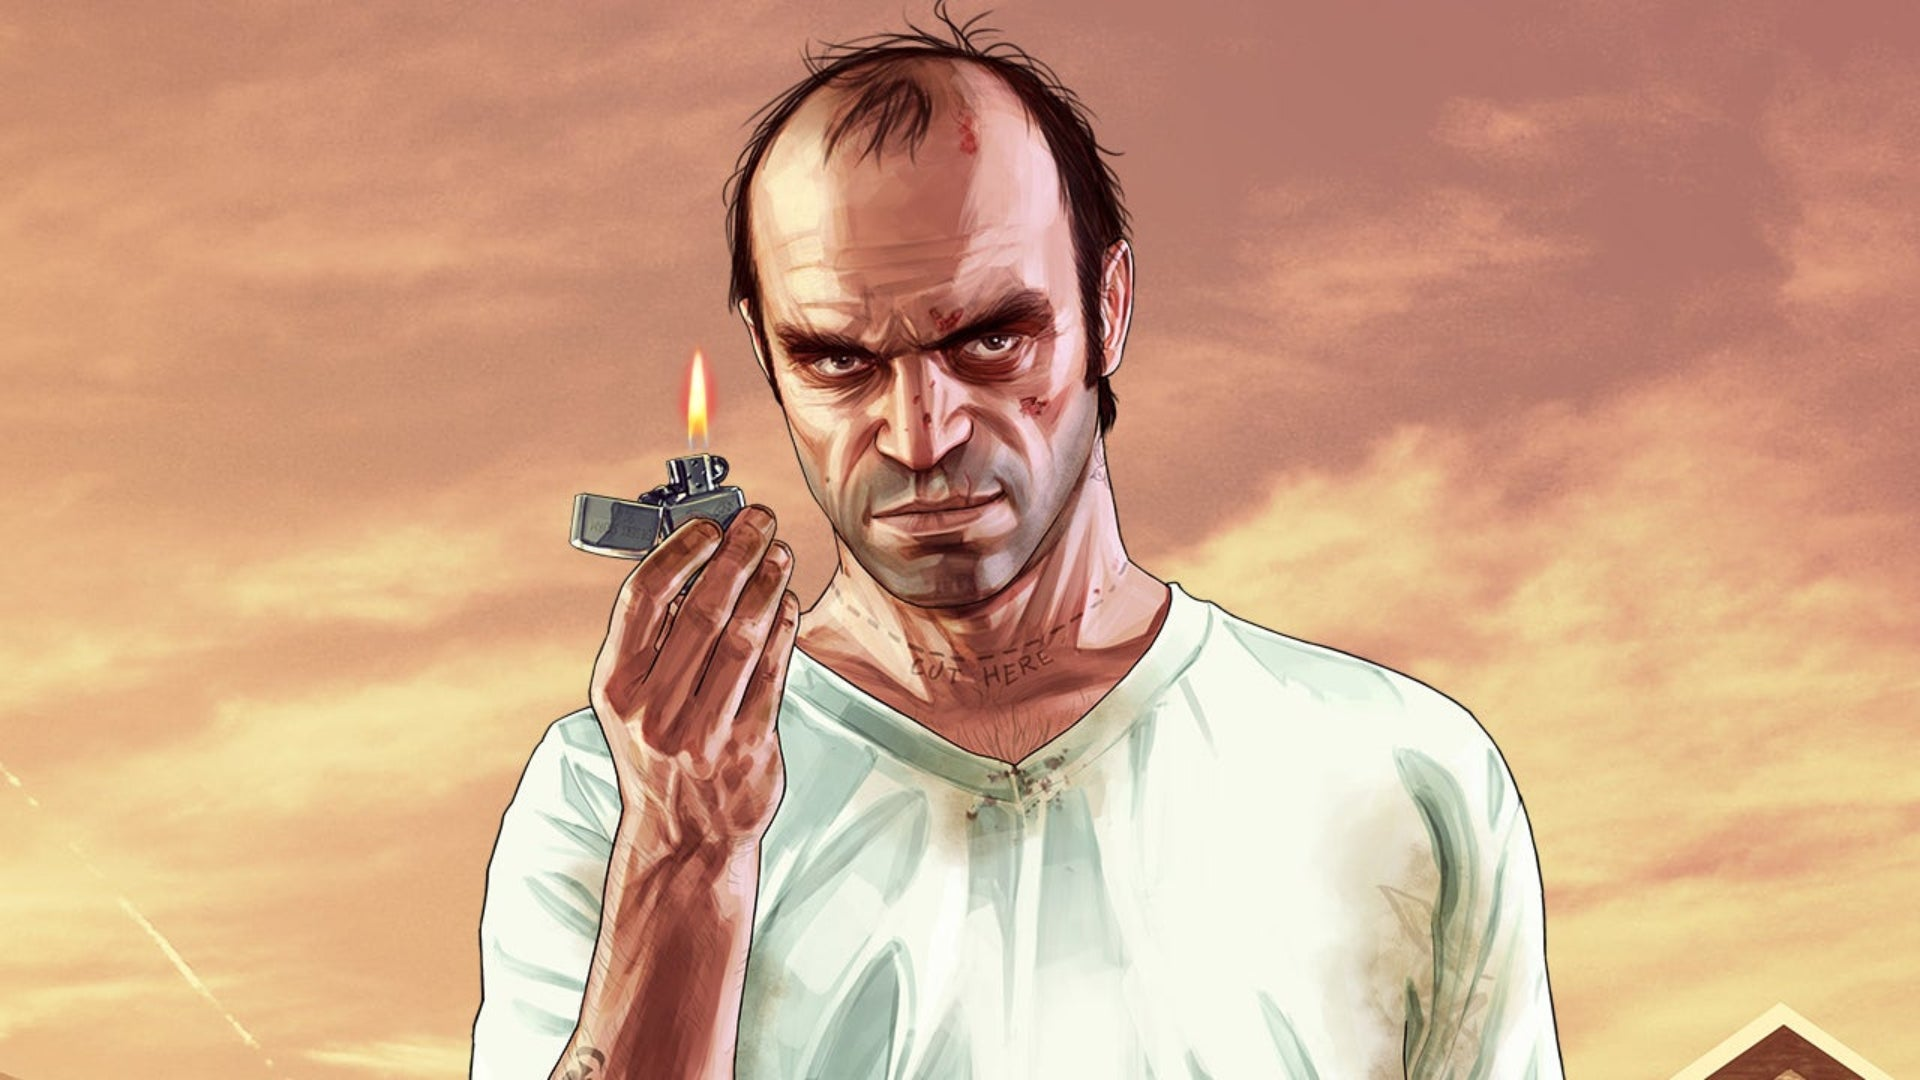 gta 5 1621914892717.jpg?width=640&fit=bounds&height=480&quality=20&dpr=0